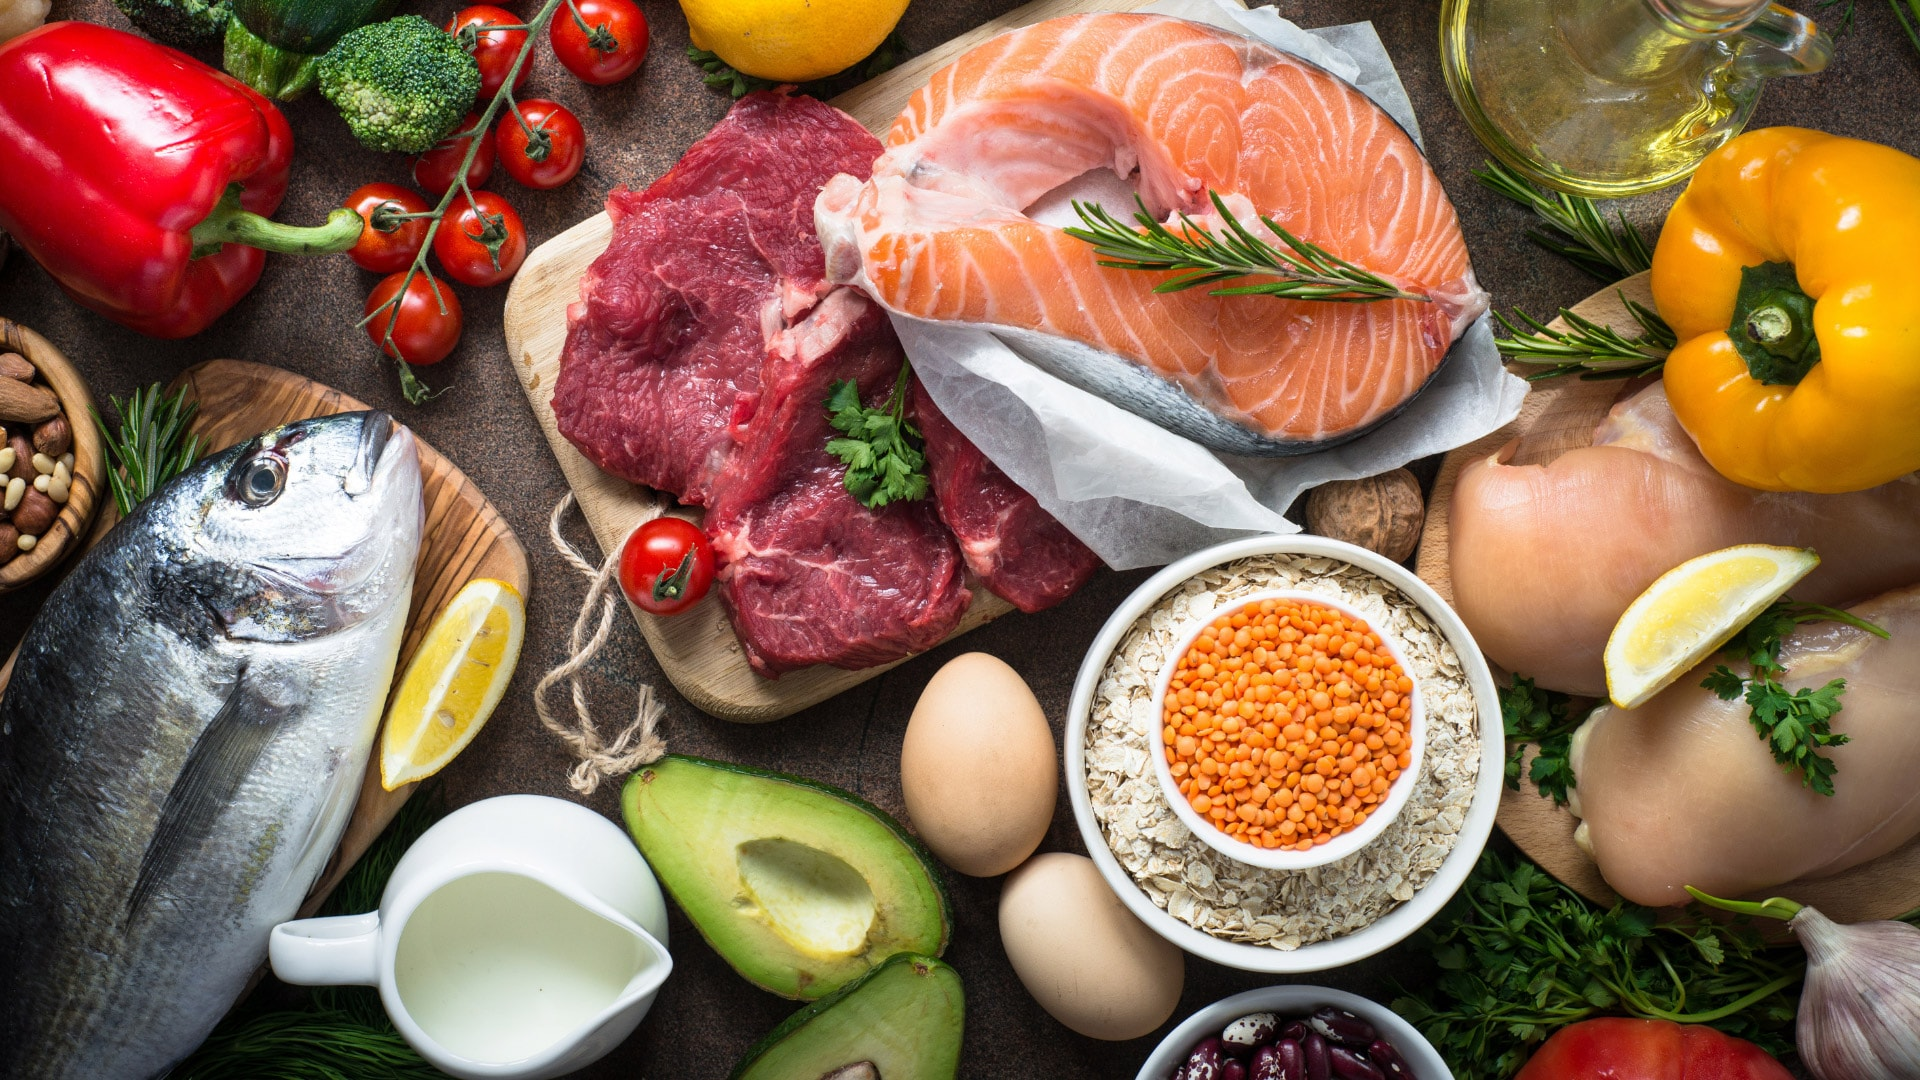 Table of foods high in essential nutrients including fish, avocados, eggs, and salmon